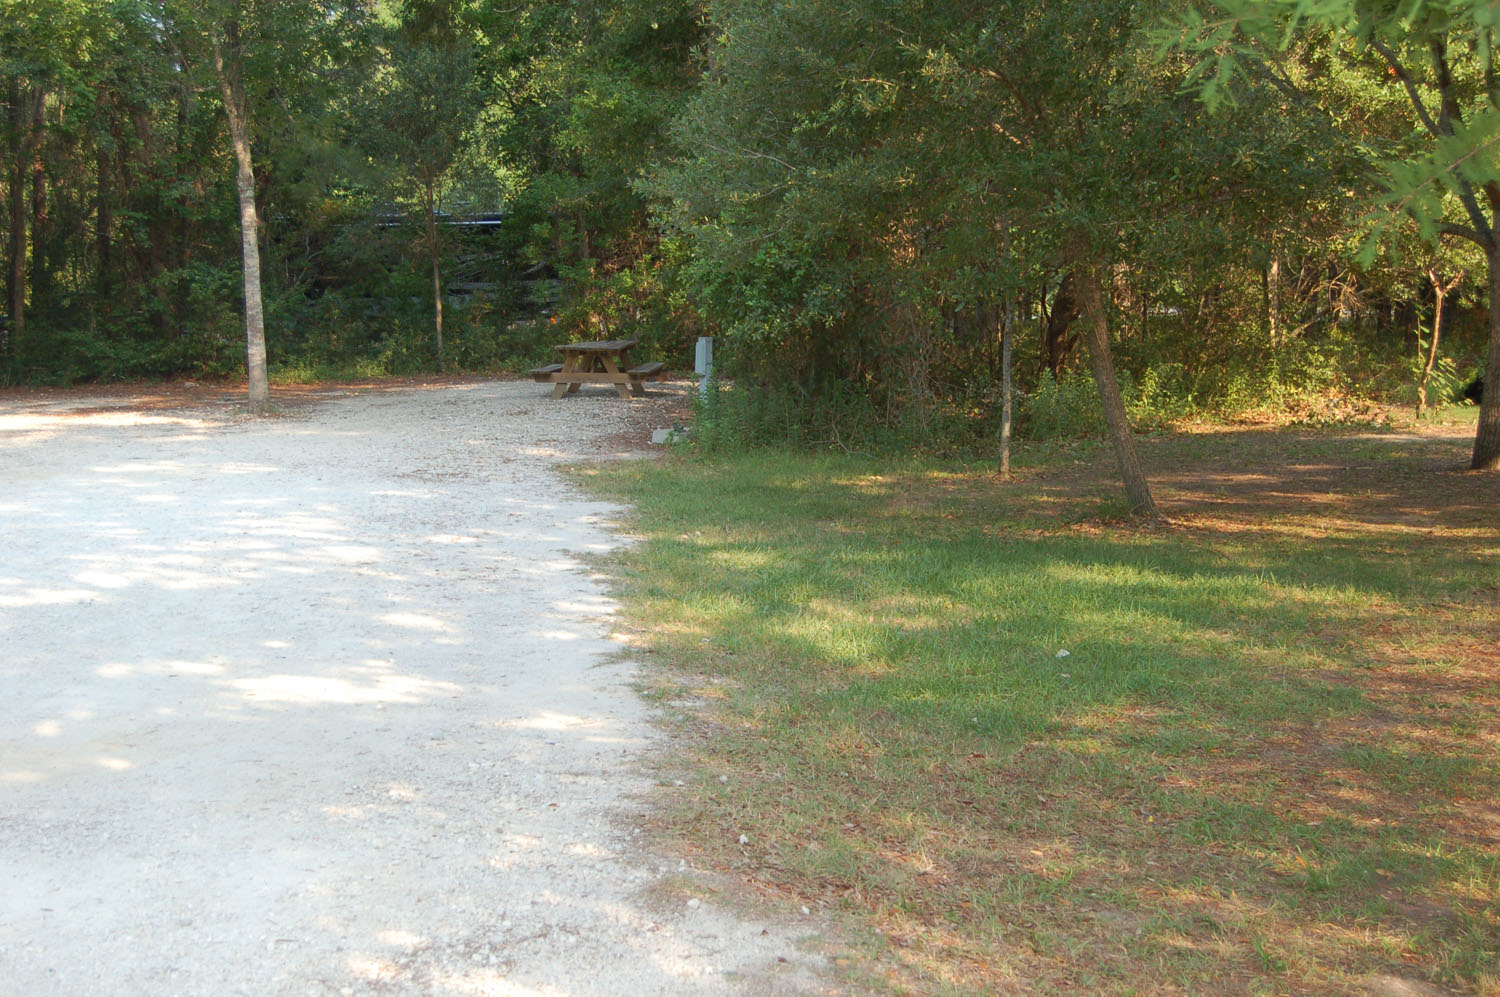 Image of campsite #67 at the Campground at James Island County Park